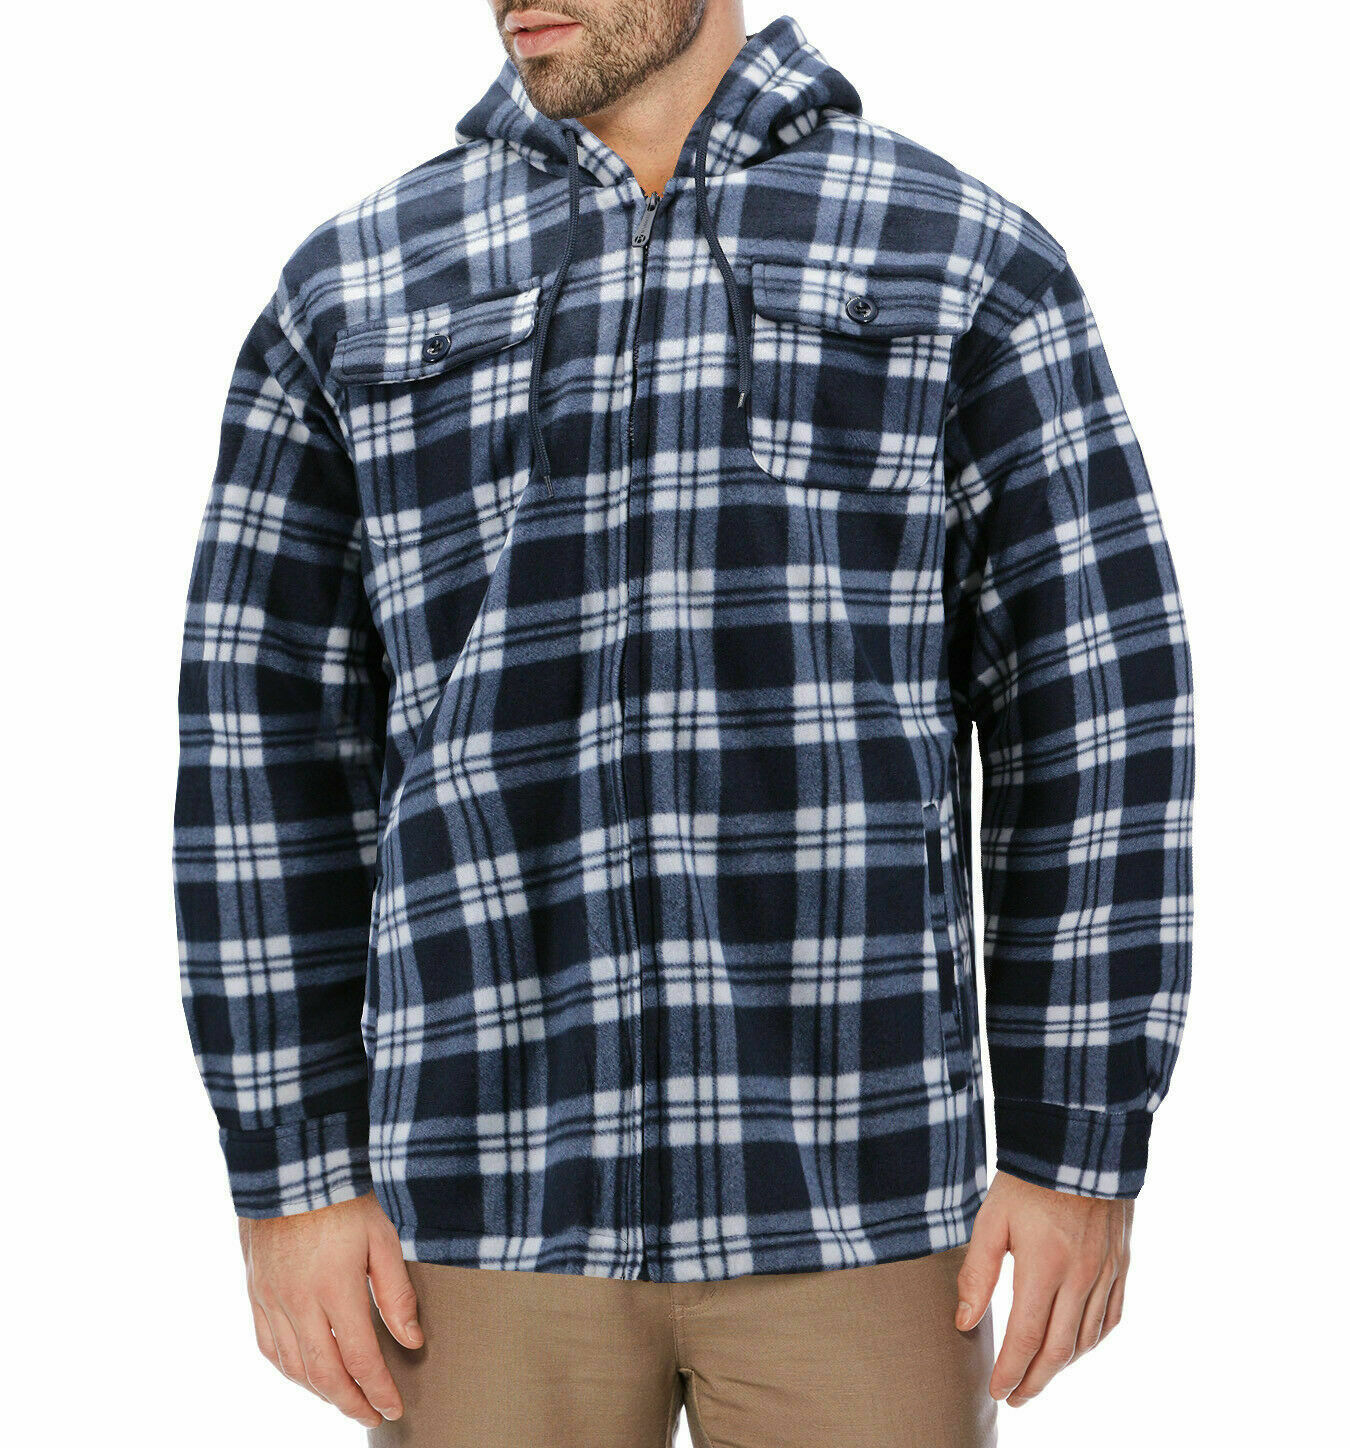 Men's Heavyweight Zip Up Fleece Plaid Sherpa Lined Hoodie Jacket w/ Defect - L